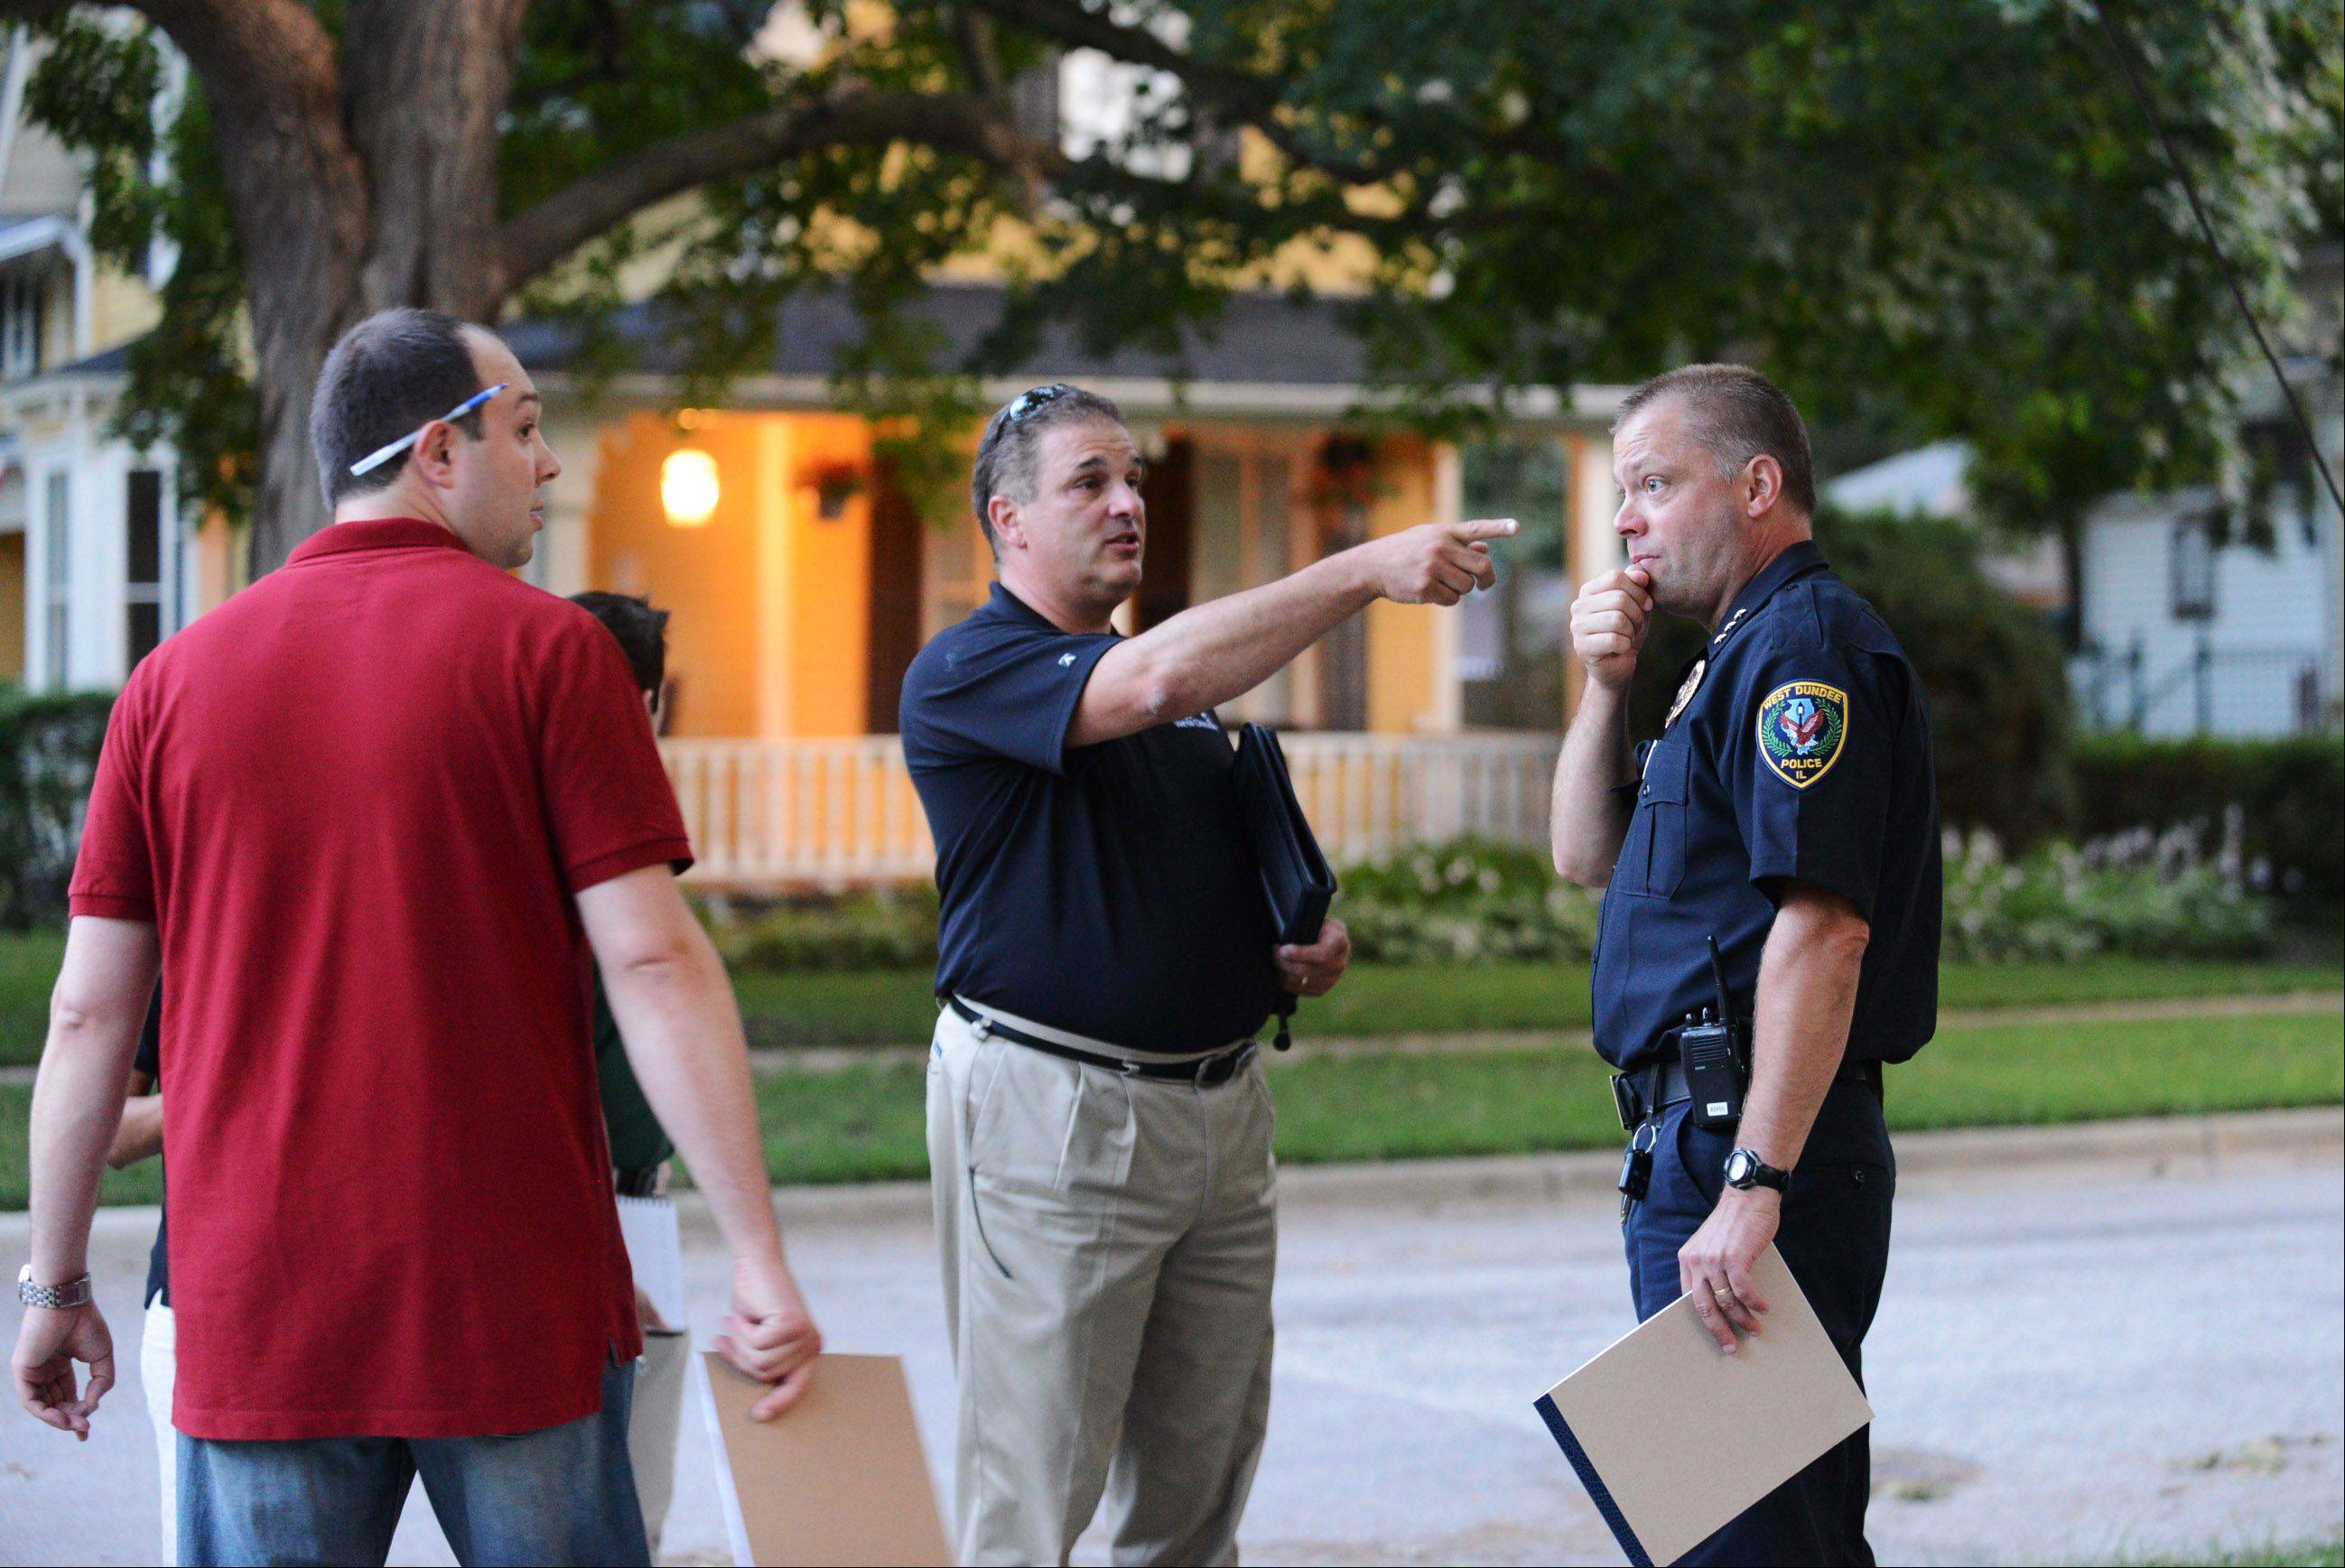 Trustee Daniel Wilbrant, Village Manager Joe Cavallaro and Police Chief Andrew Wieteska search for property maintenance issues on Monday. The West Dundee village president and board took walking tours of local neighborhoods in order to better understand their communities needs.